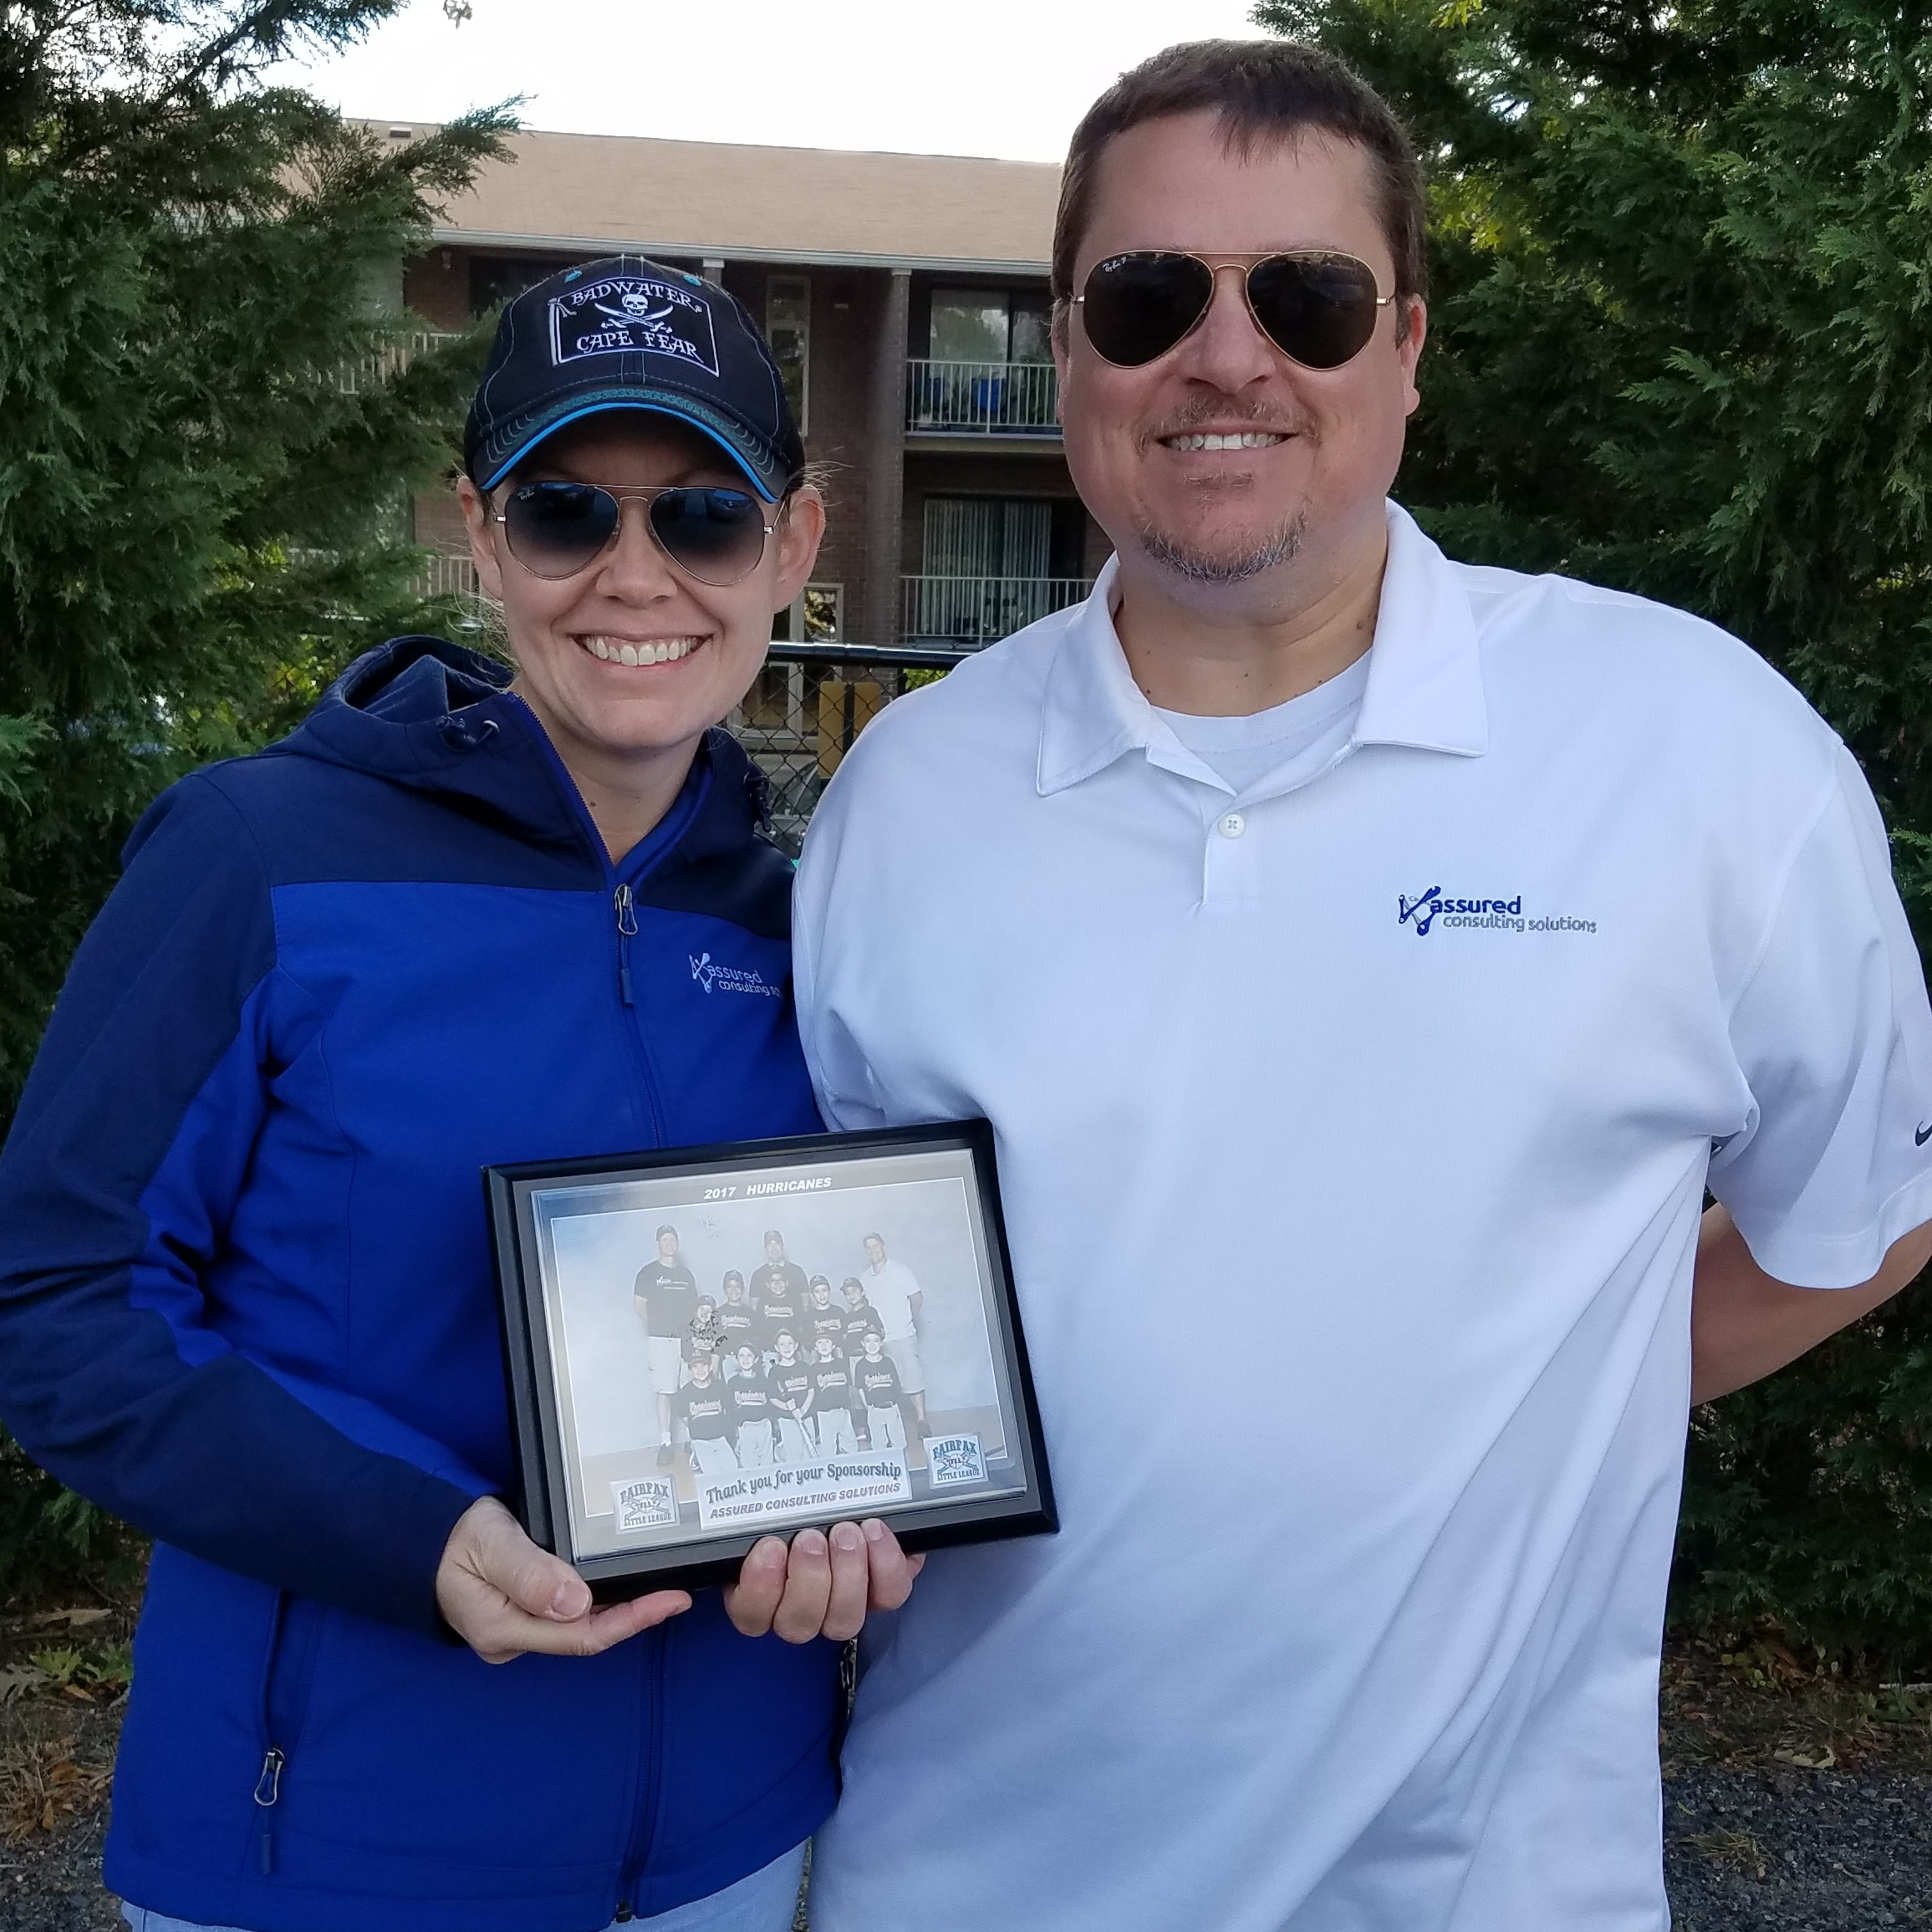 ACS Managing Partner (Erin Willett, Left) and ACS Chief Technology Officer (Steve Willett, Right) accept a plaque from the Fairfax Little League thanking Assured Consulting Solutions for their Fall 2017 team sponsorship.